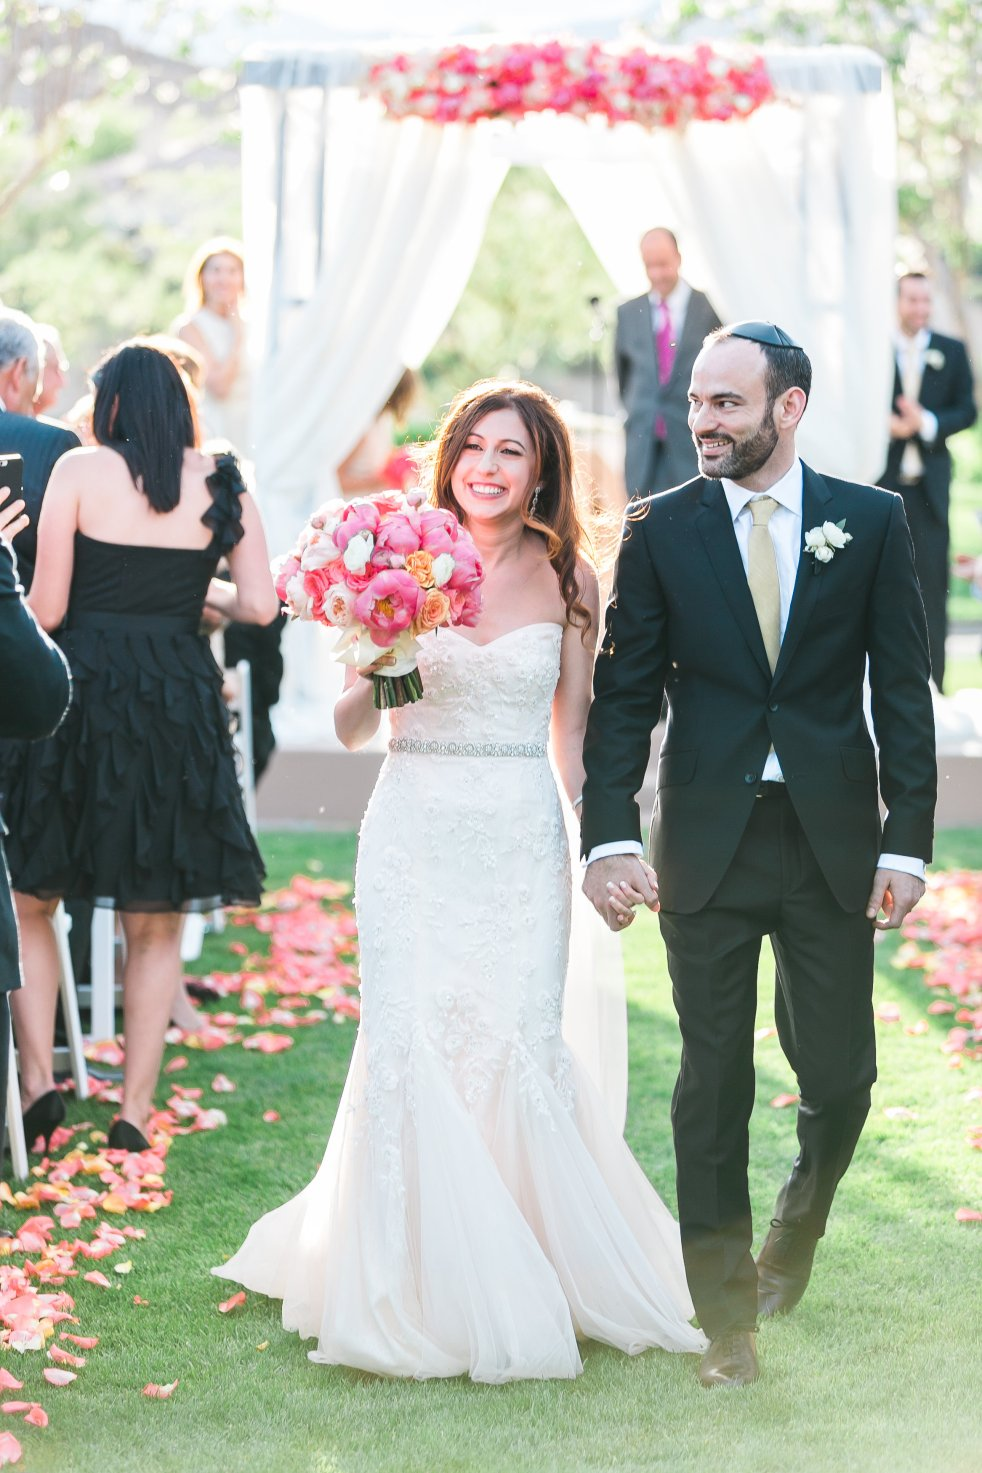 Coral and peach wedding at Red Rock Country Club. Florals by Layers of Lovely. Photography by J. Anne Photography.